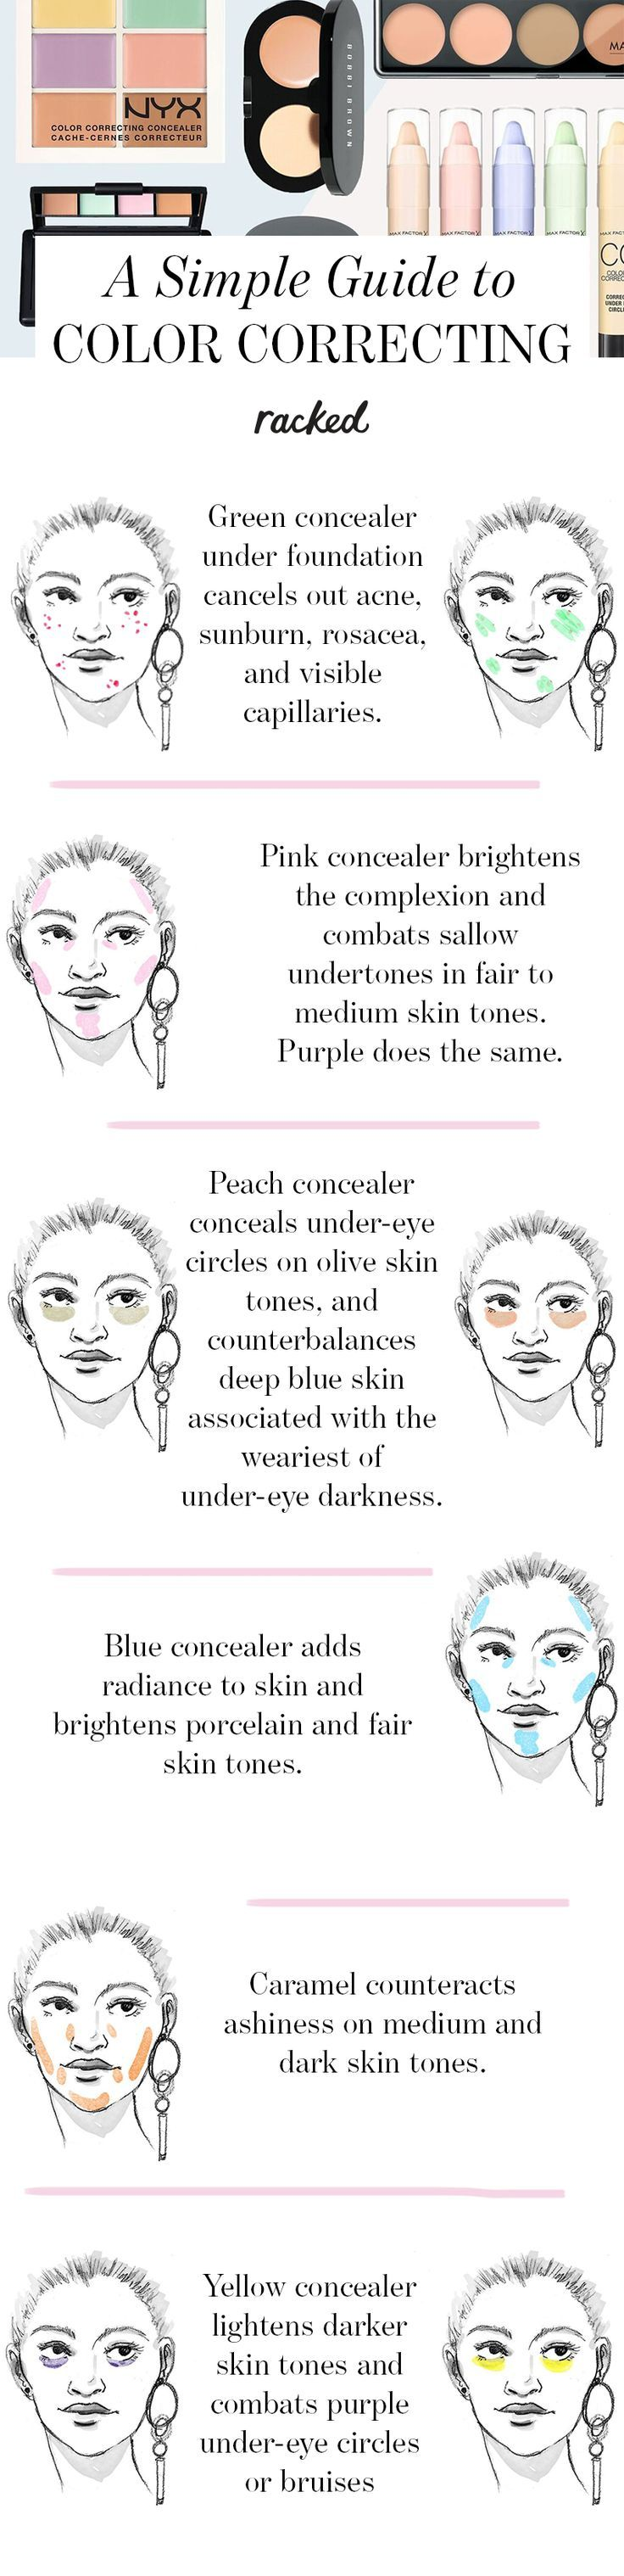 A Simple Guide to Color-Correcting Makeup, and How to Cover Blemishes. // More Tips & Tricks: (http://www.racked.com/2016/3/10/11180236/color-correcting-guide)